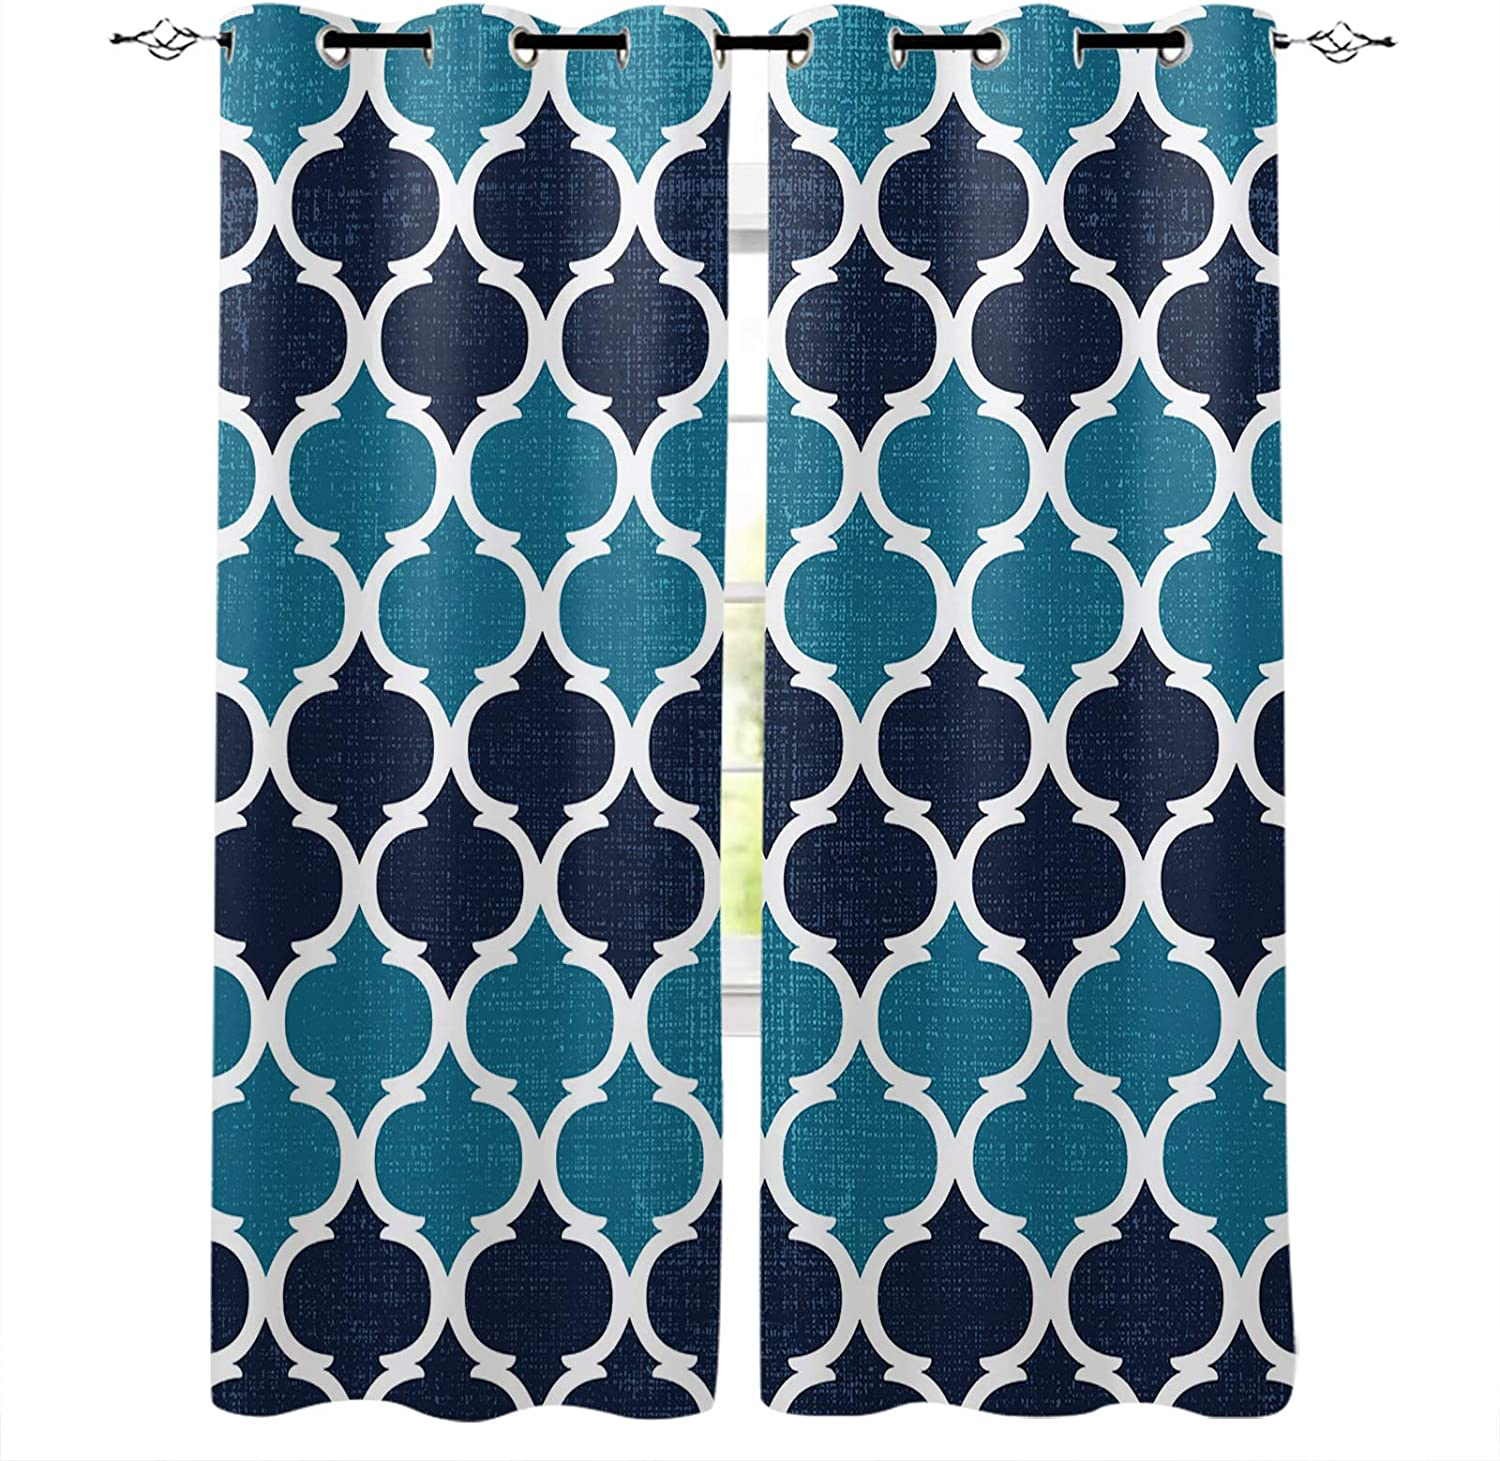 FortuneHouse8 Blackout Ranking TOP20 Curtains Retro Moroccan Geome Design Don't miss the campaign Blue